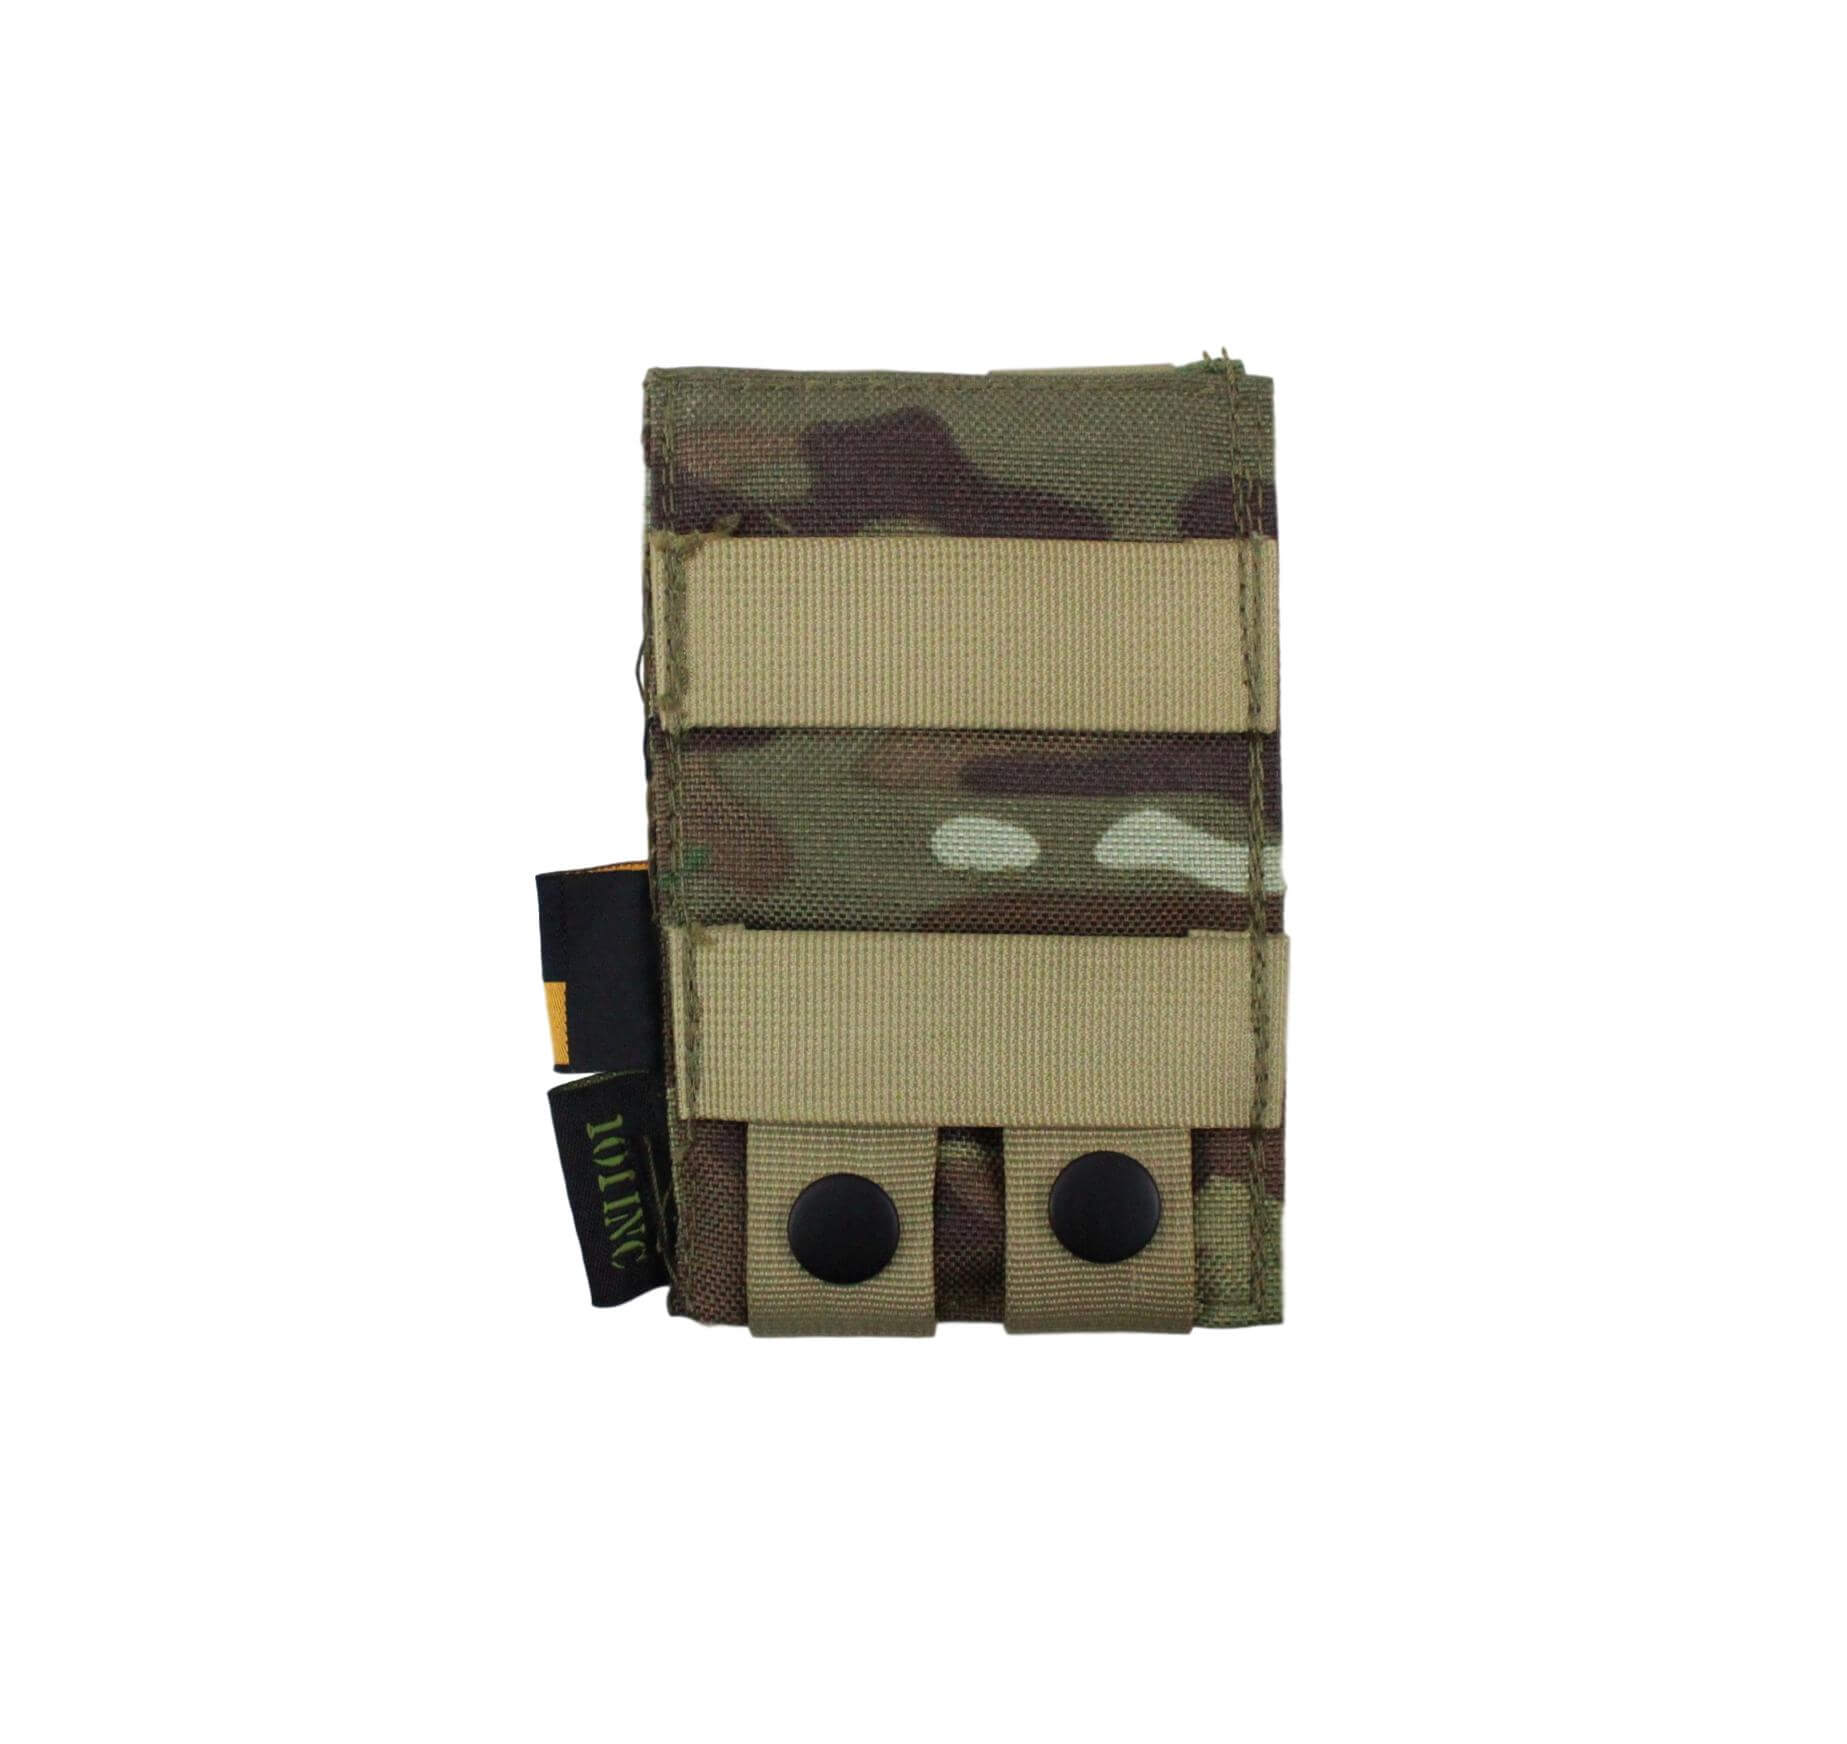 Image of 101 Inc Elastisk M4 lomme, Multicam